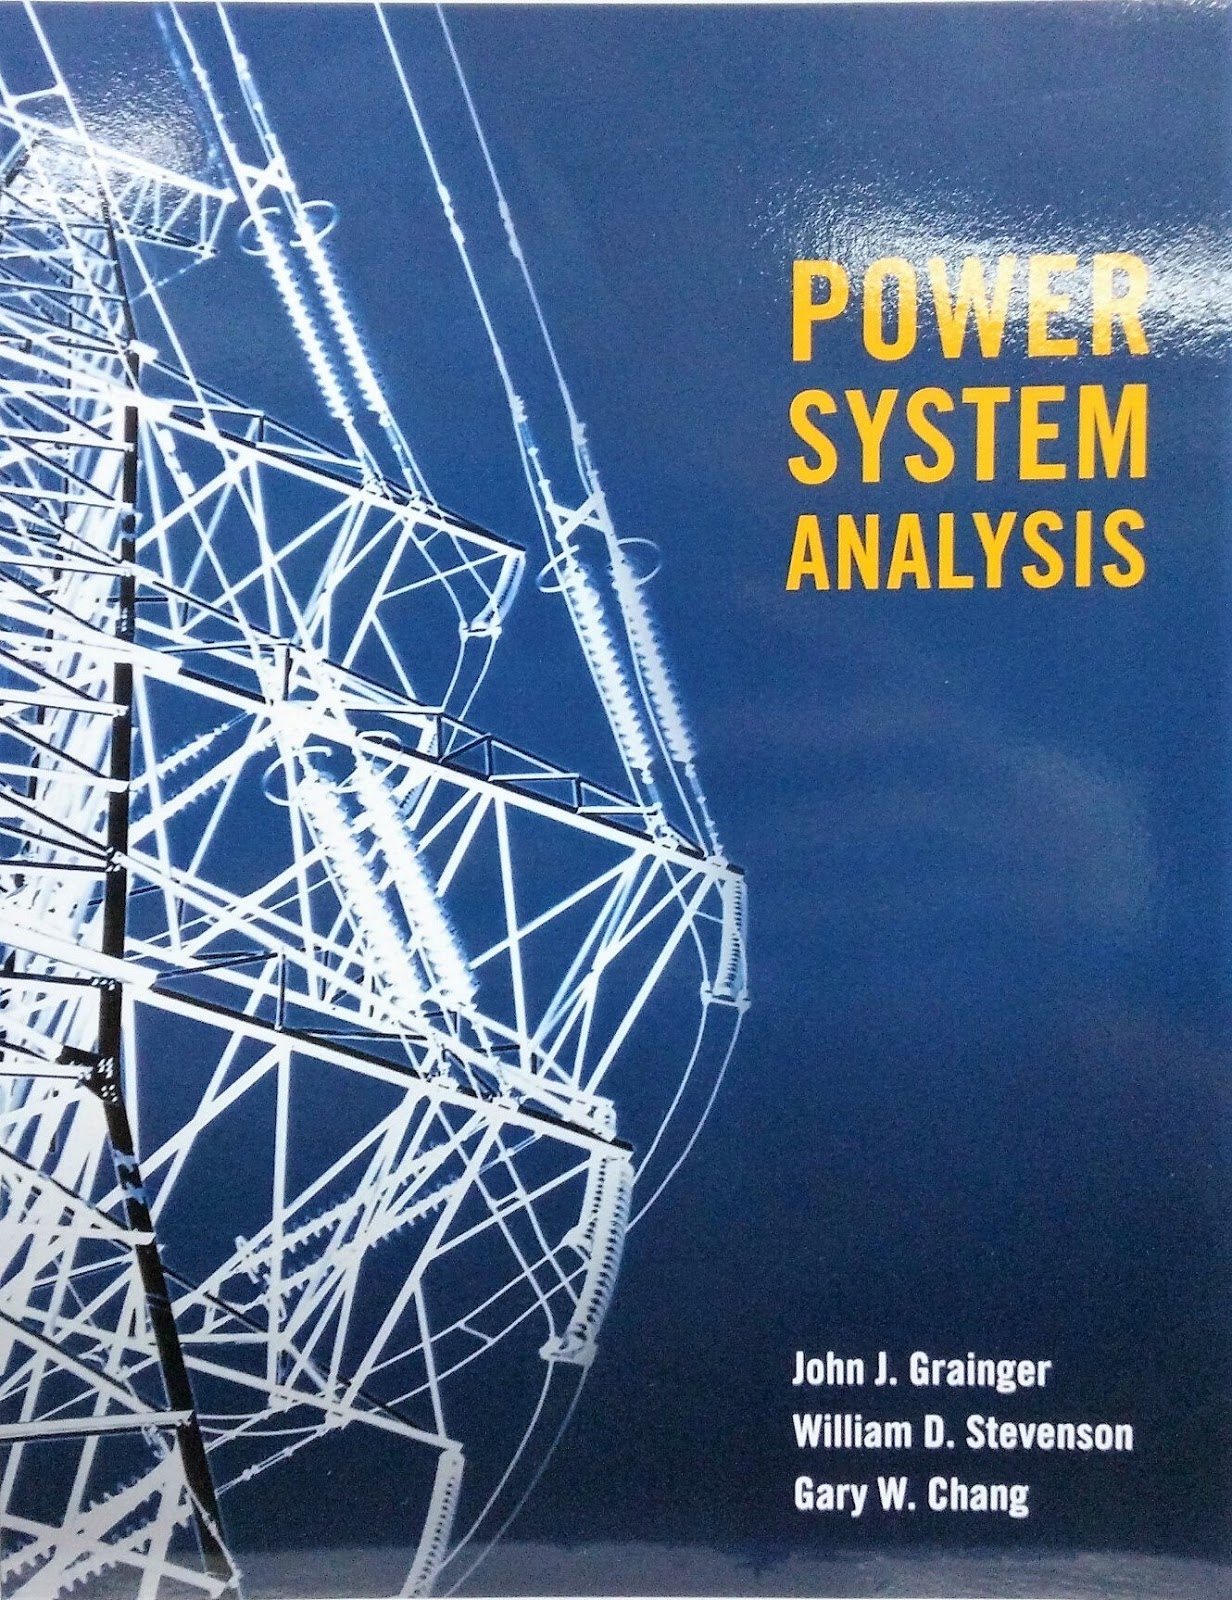 And electrical analysis power systems pdf design